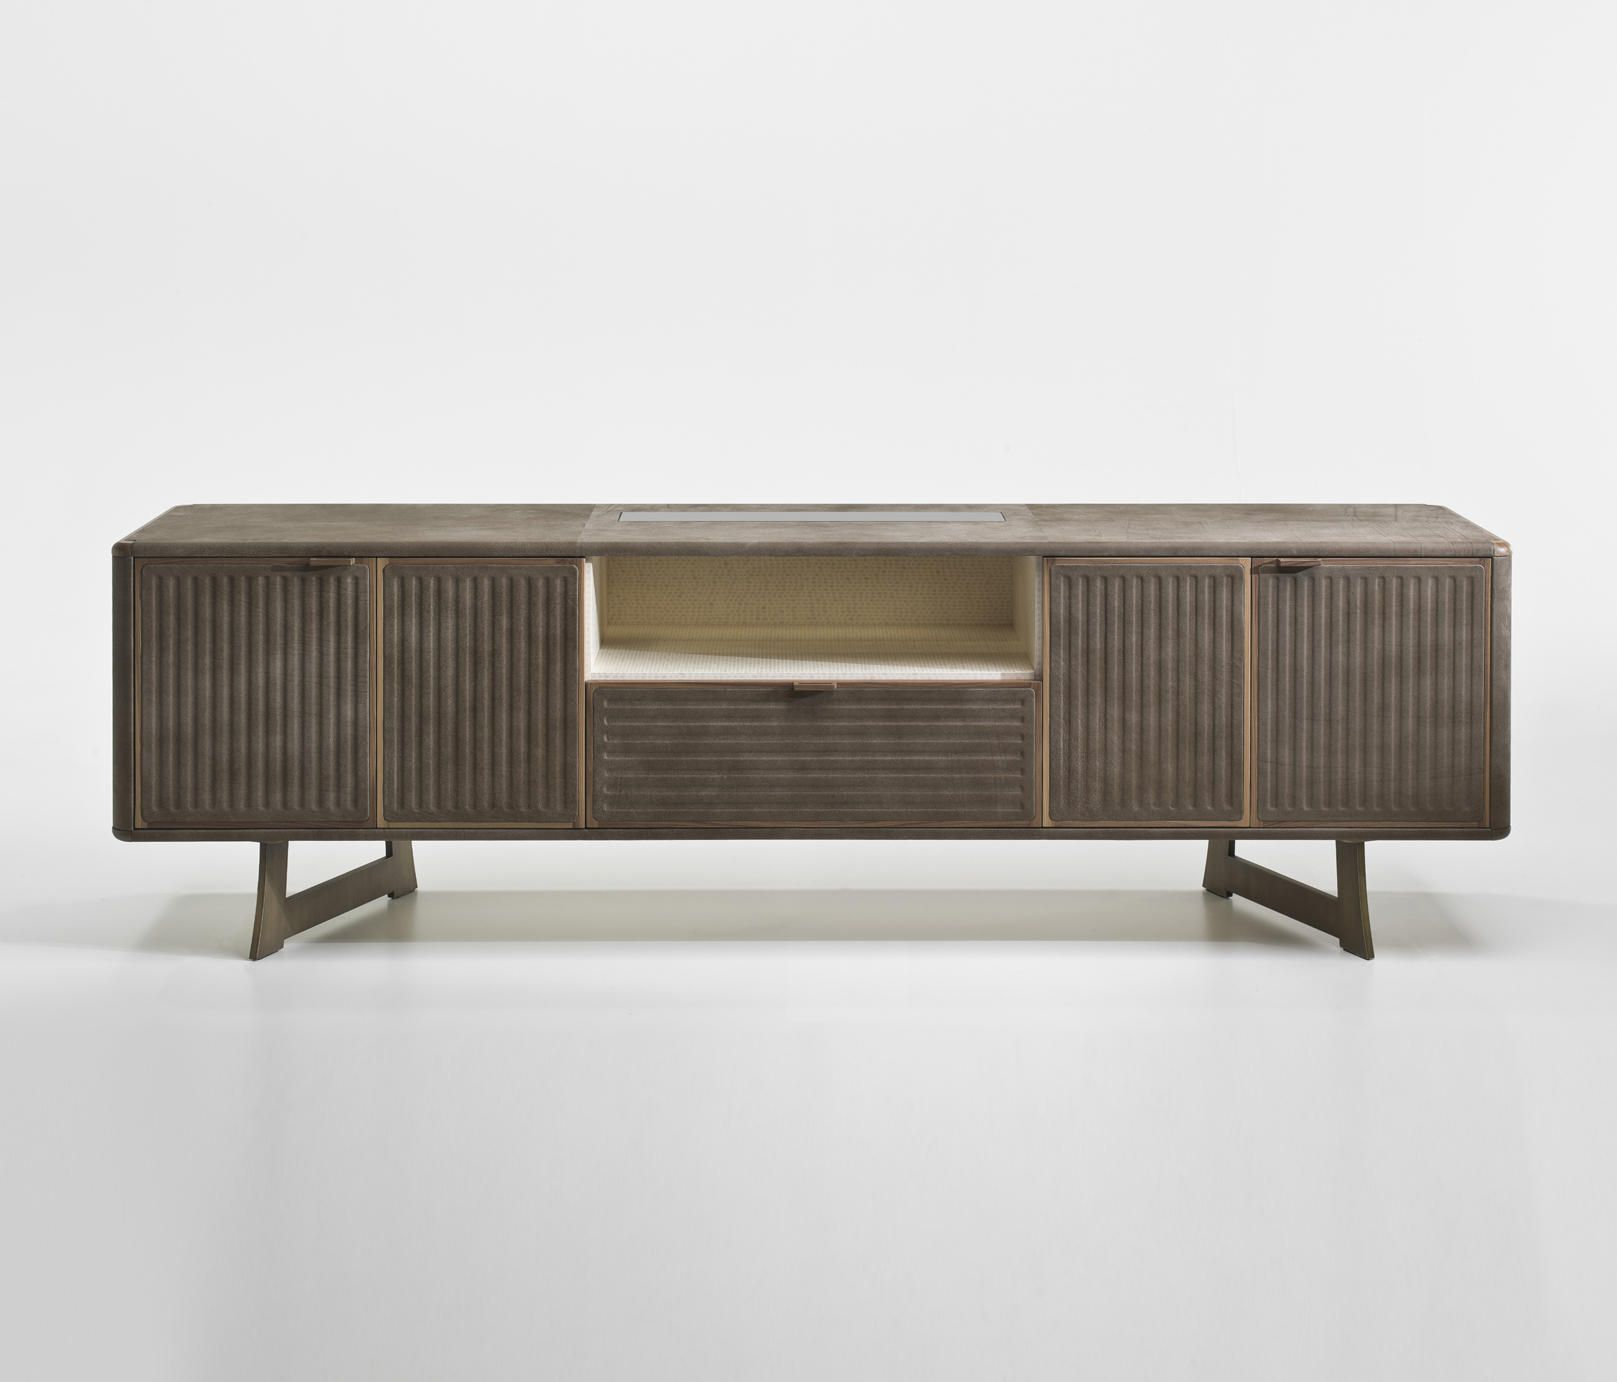 Moore Designer Sideboards From I 4 Mariani All Information High Resolution Images Cads Catalogues Sideboard Designs Cabinet Furniture Chair Design